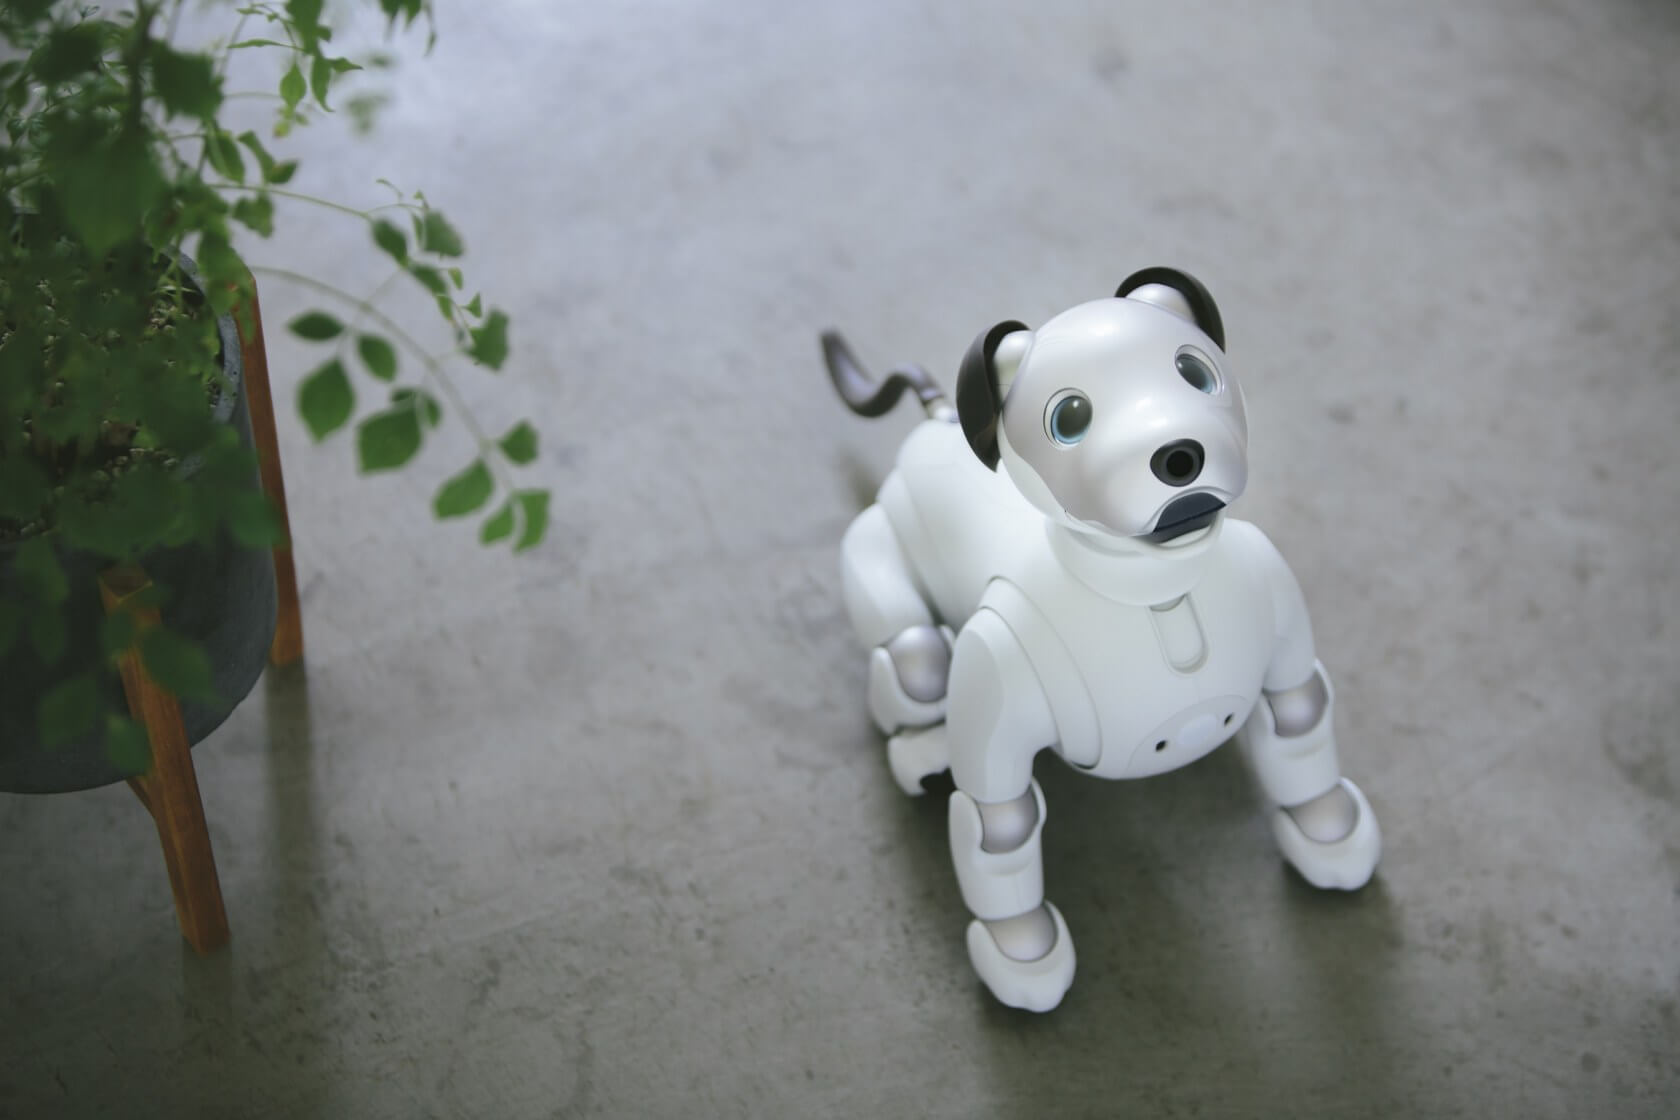 Sony's cyber pooch 'Aibo' will see a US release later this year